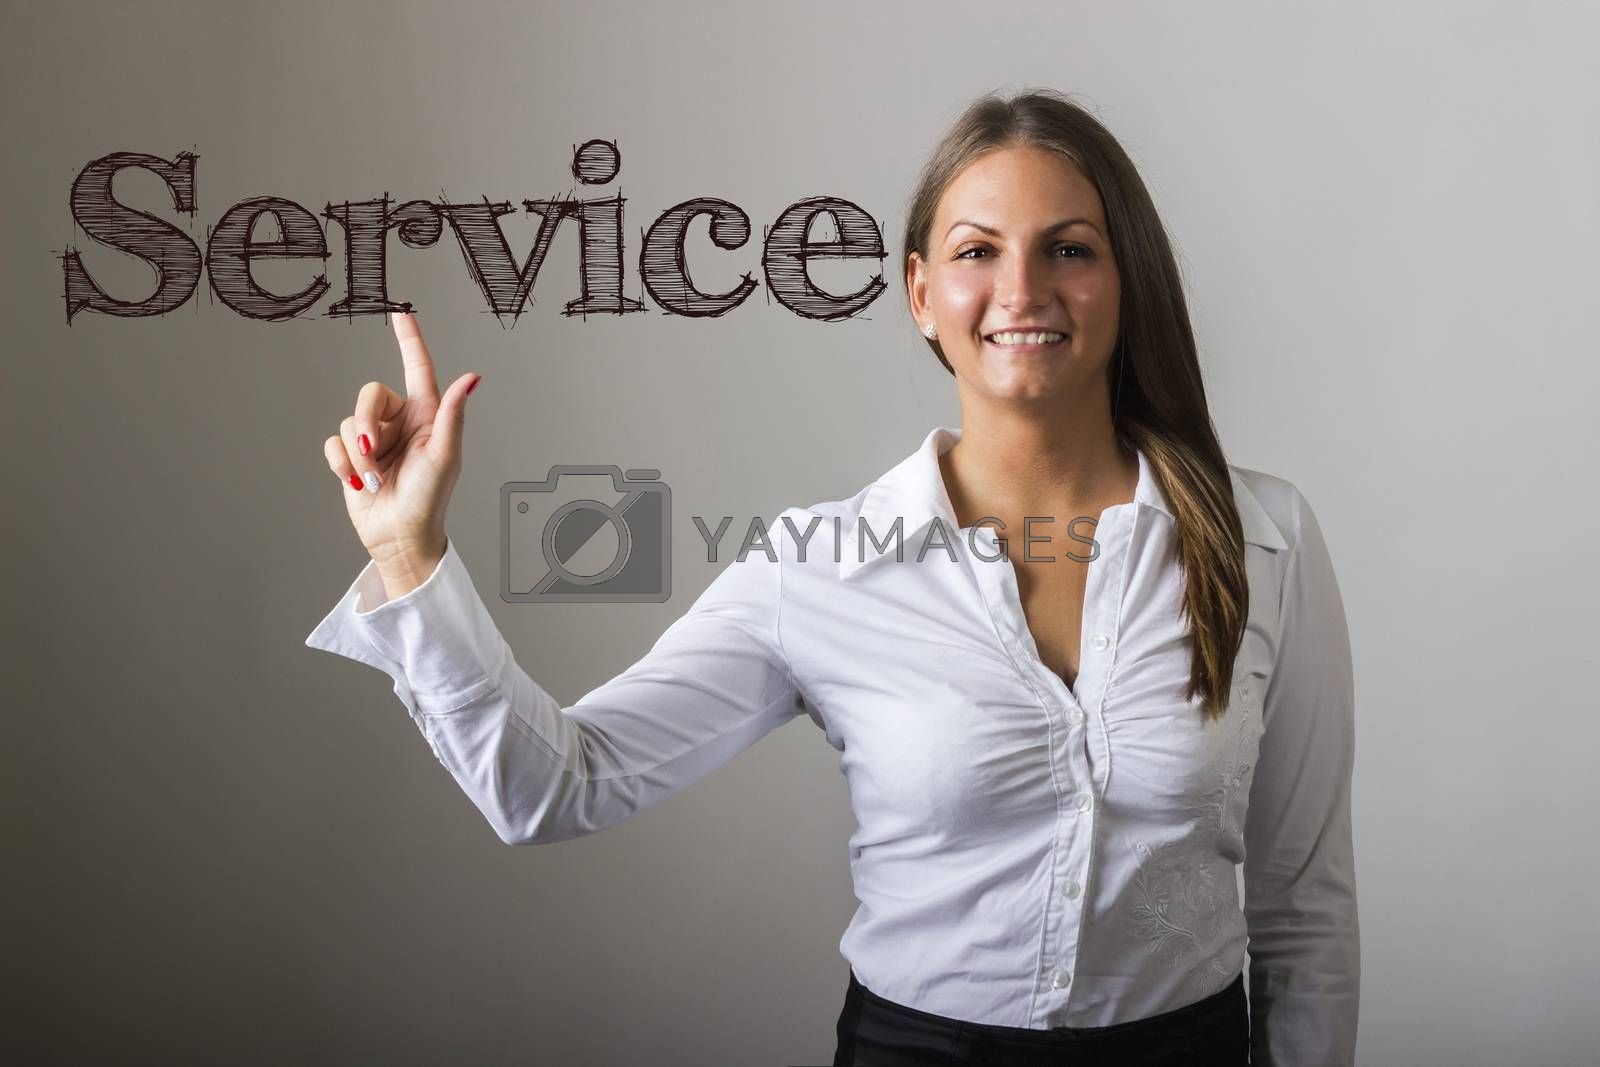 Service - Beautiful girl touching text on transparent surface - horizontal image